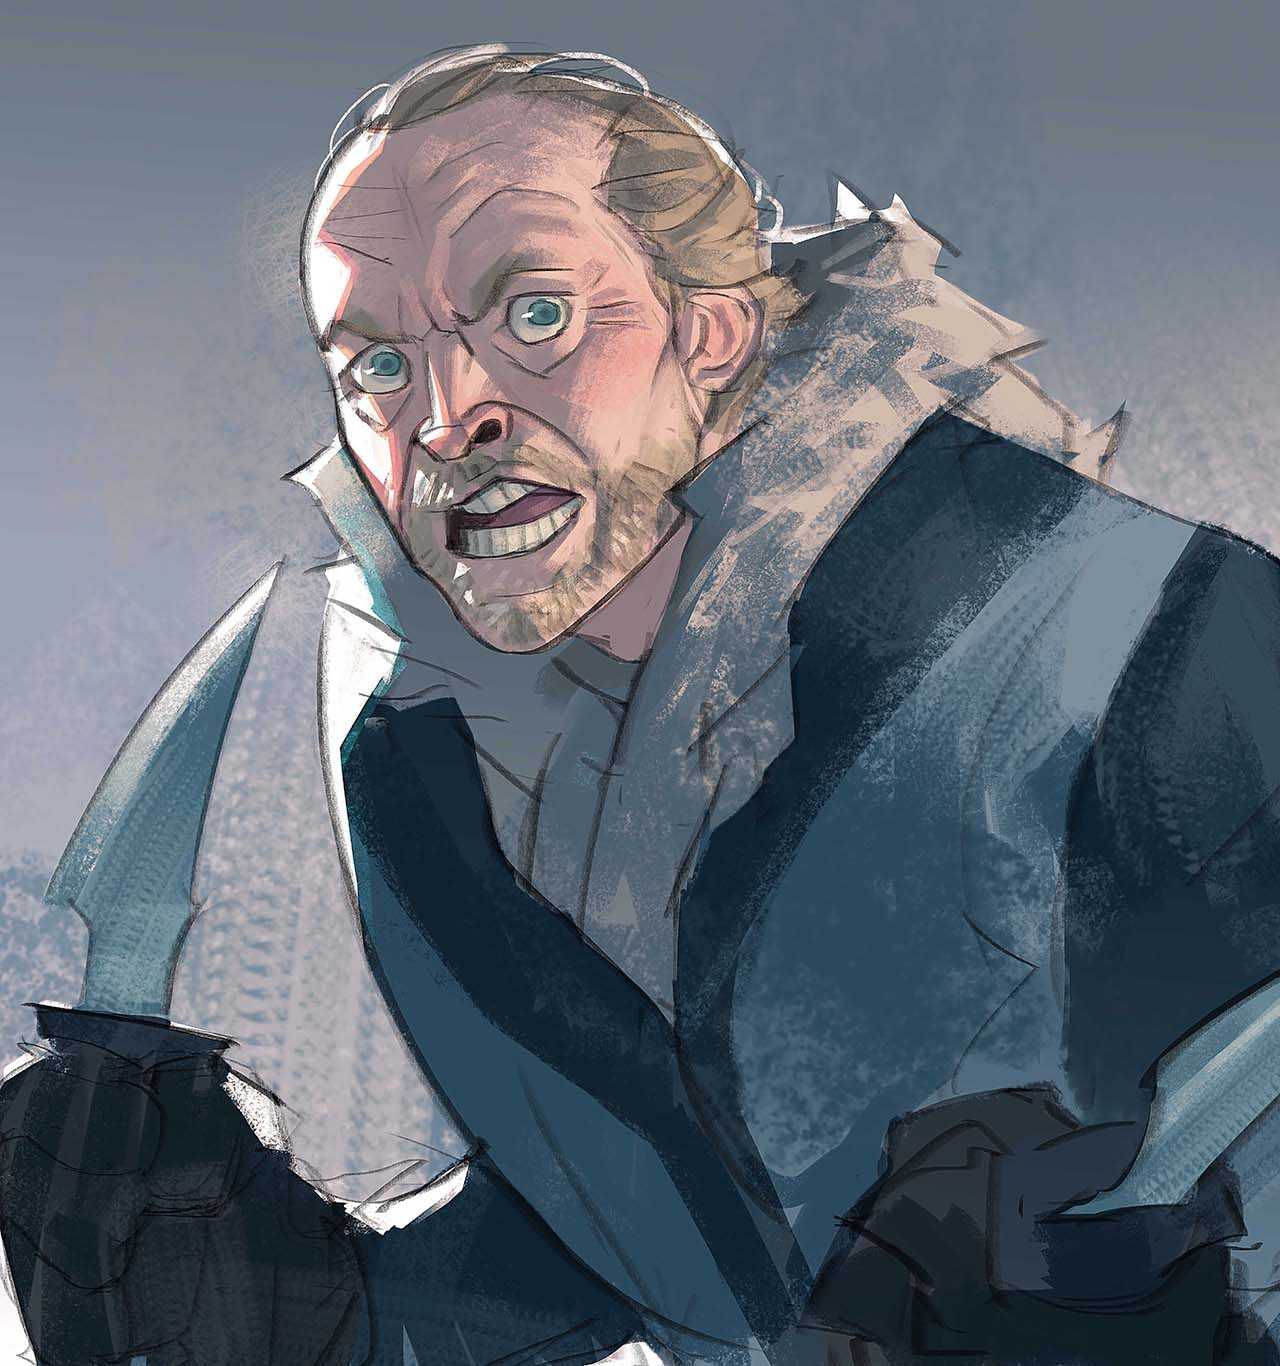 Artist Creates Unique Character Arts From Game Of Thrones – Jorah Mormont Character Art By Ramón Nuñez